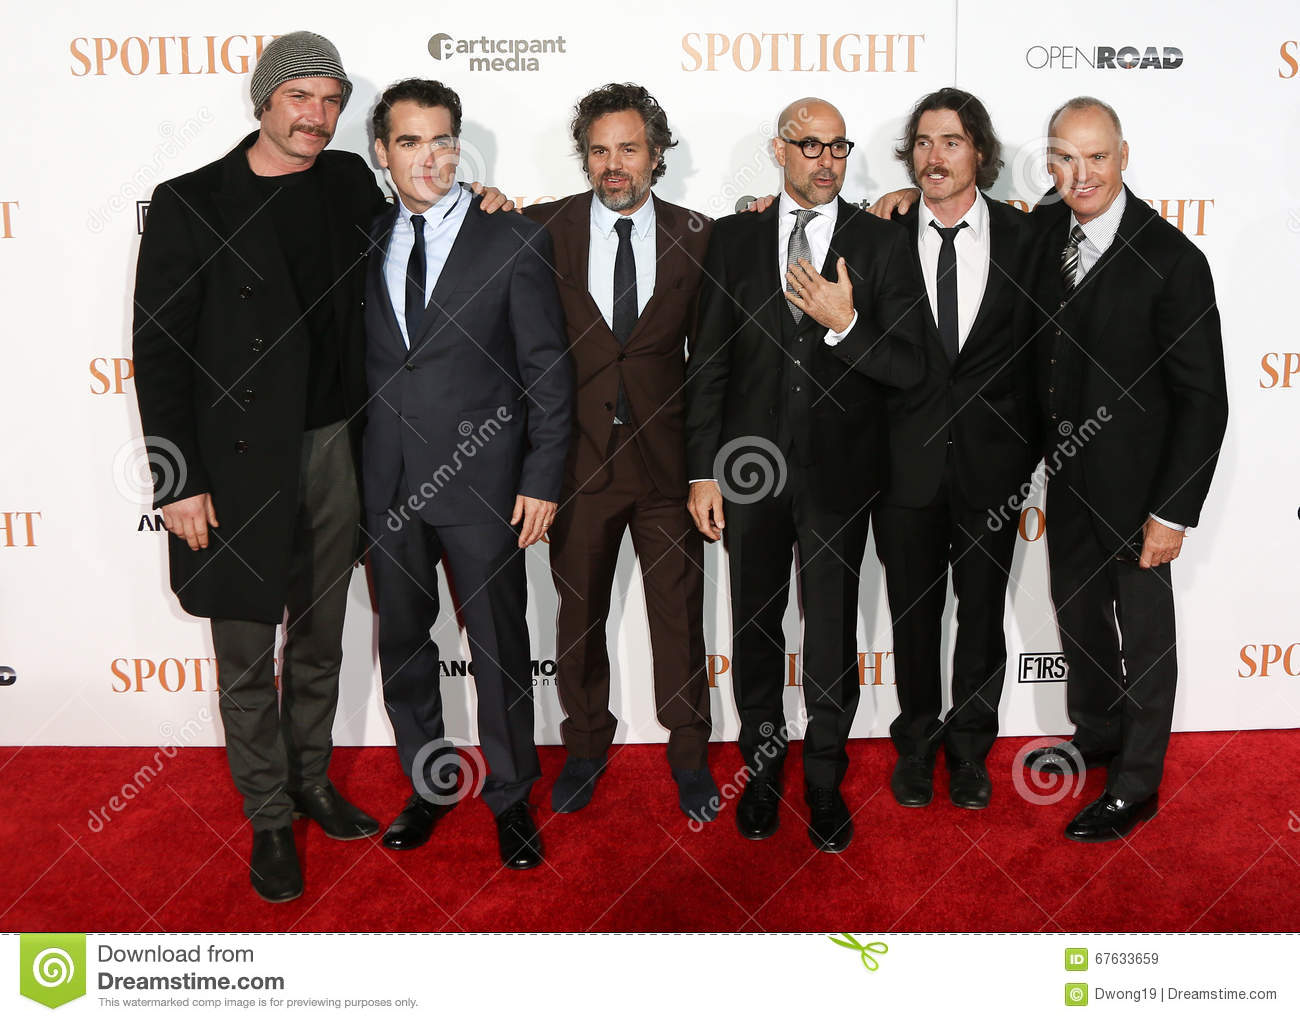 Liev Schreiber, Brian d Arcy James, Mark Ruffalo, Stanley Tucci, Billy Crudup, Michael Keaton